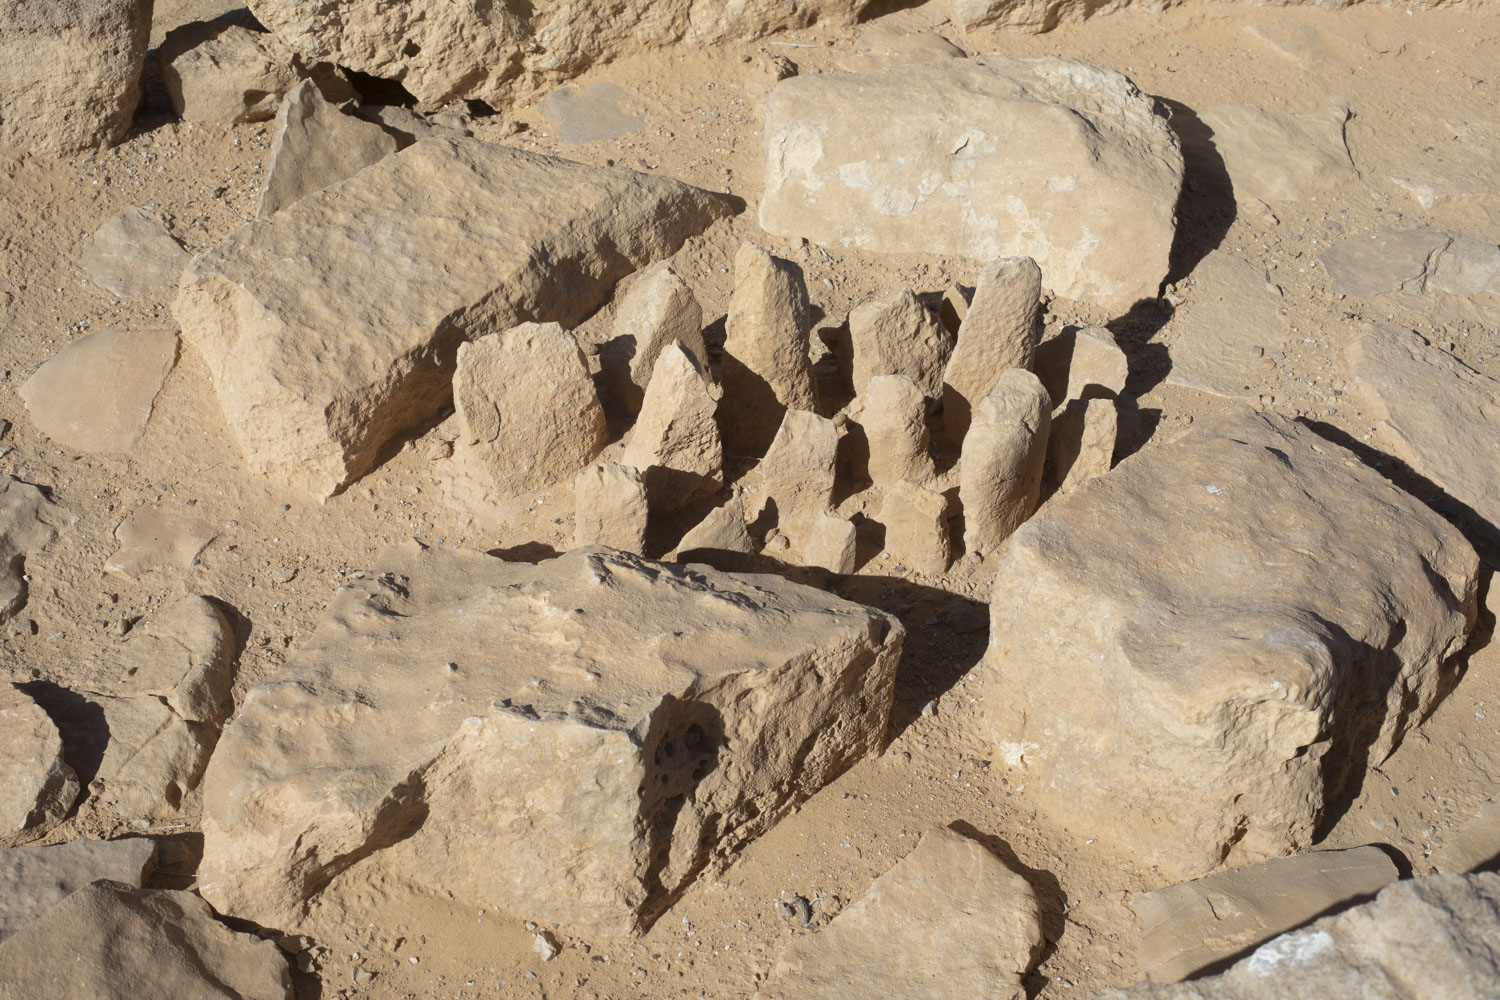 A cluster of roughly conical shaped stones are arranged on the desert floor surrounded by a square of four large rectangular shaped stones.